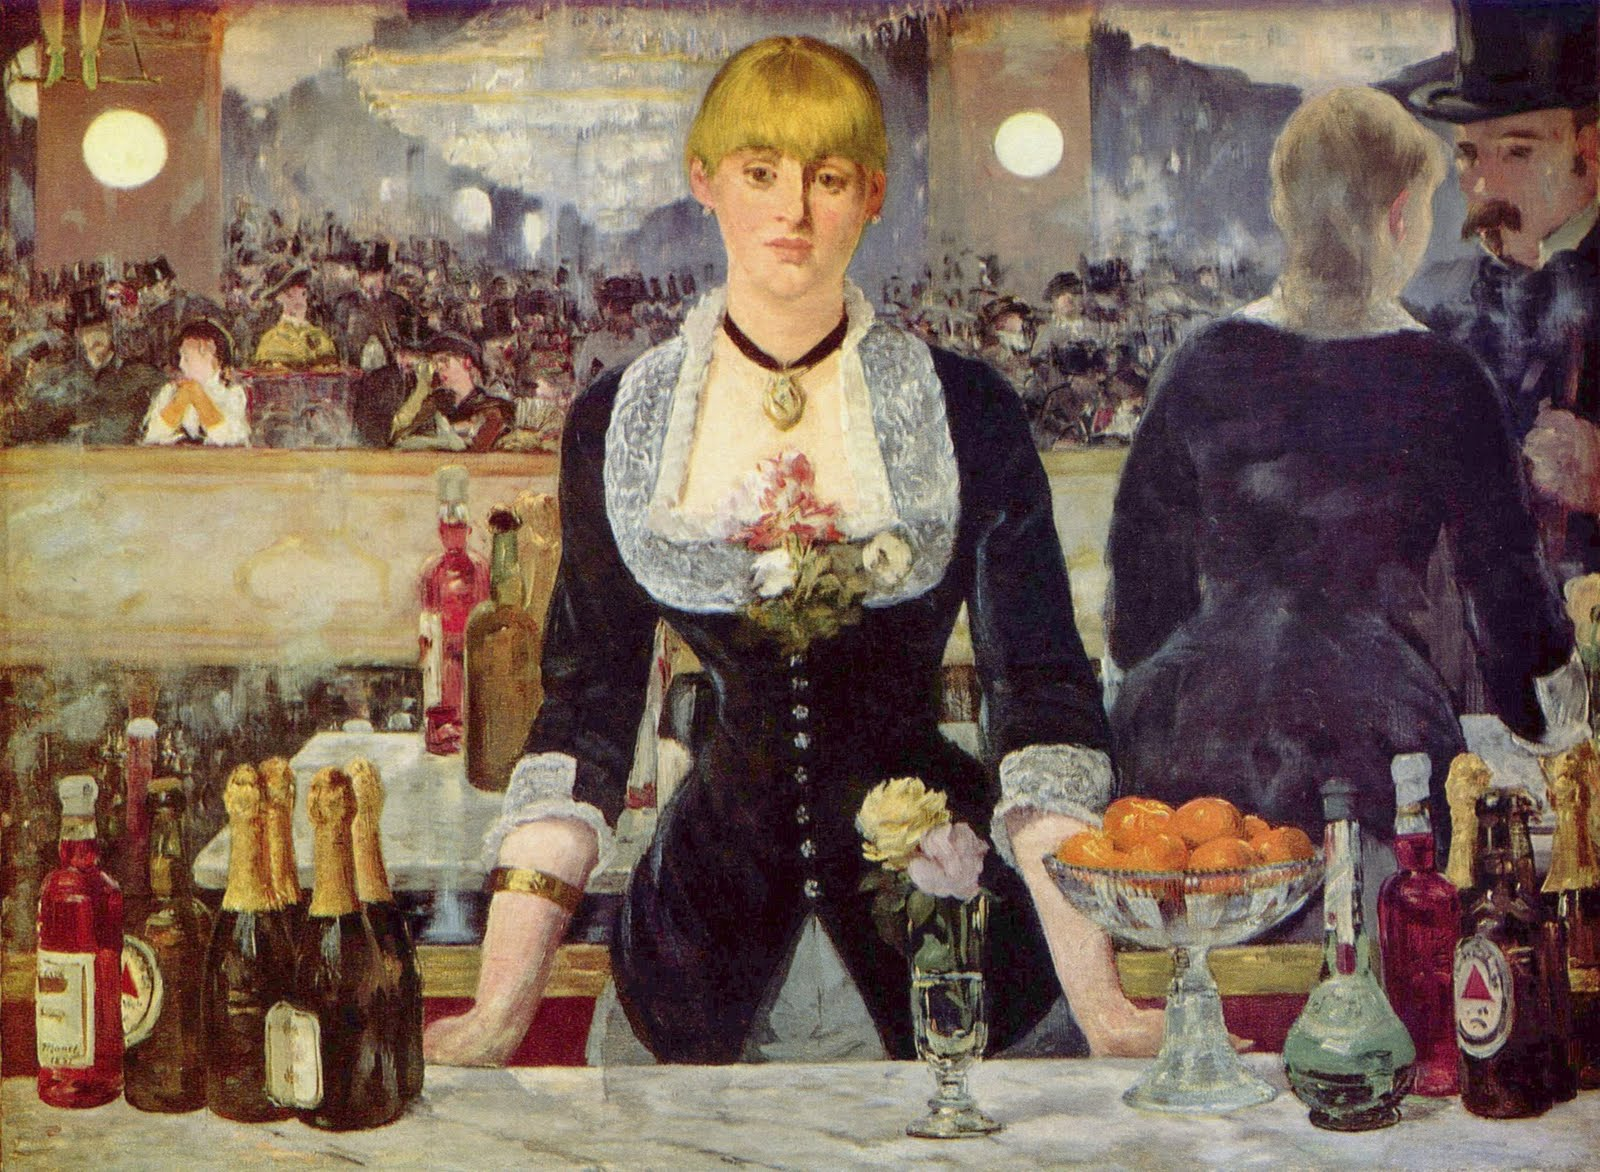 A Bar At The Folies Bergere This is an unusual portrait